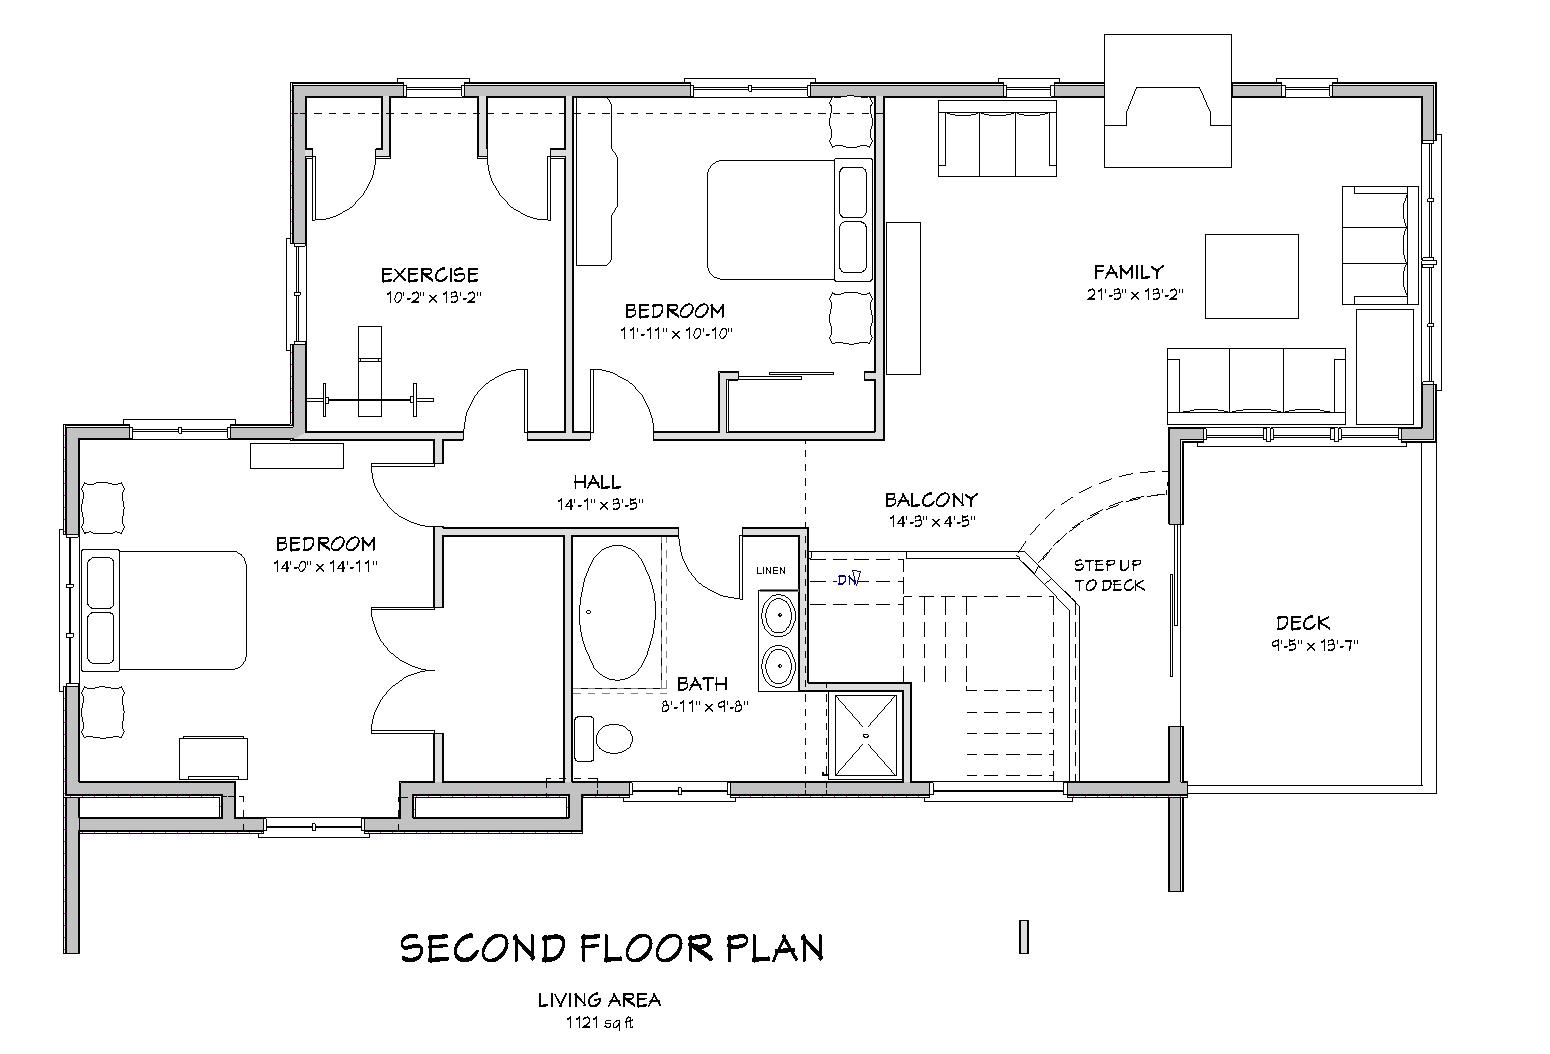 Home Plans Pdf the Penobscot Country House Plan D64 2431 the House